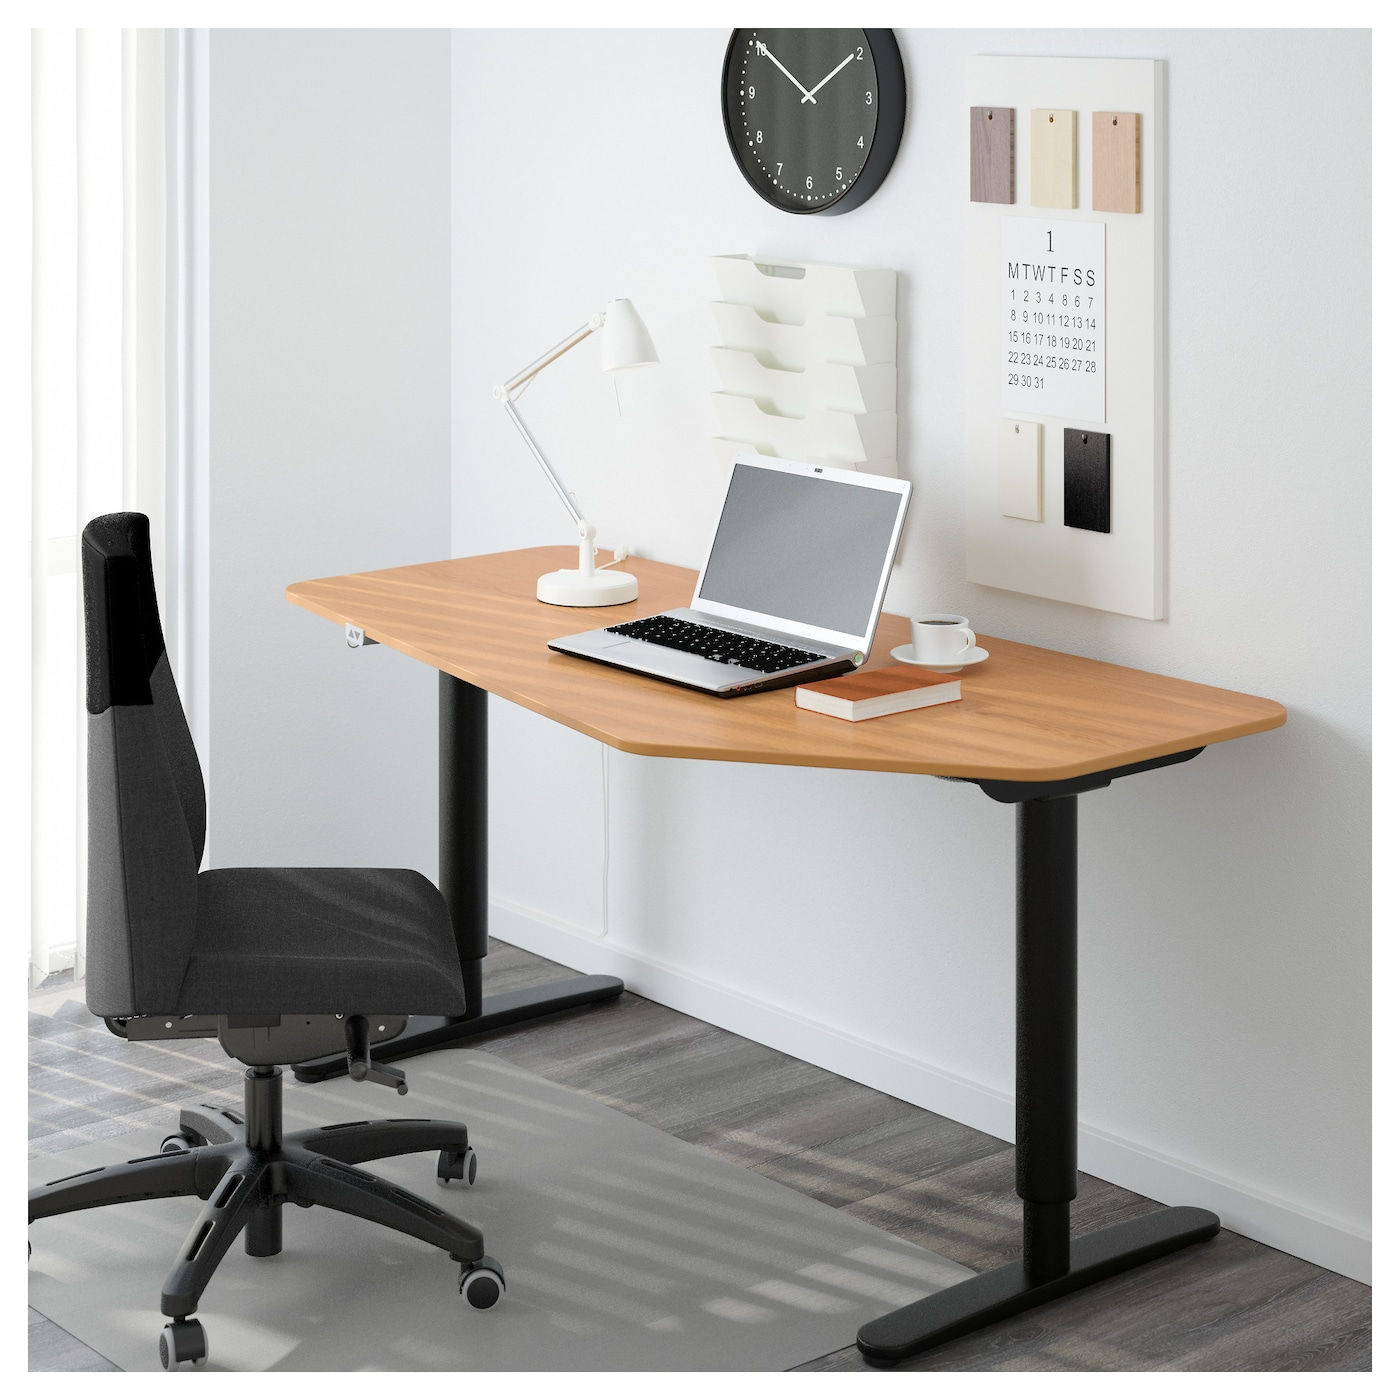 bekant 5 sided desk sit stand oak veneer black 160x80 cm ikea. Black Bedroom Furniture Sets. Home Design Ideas